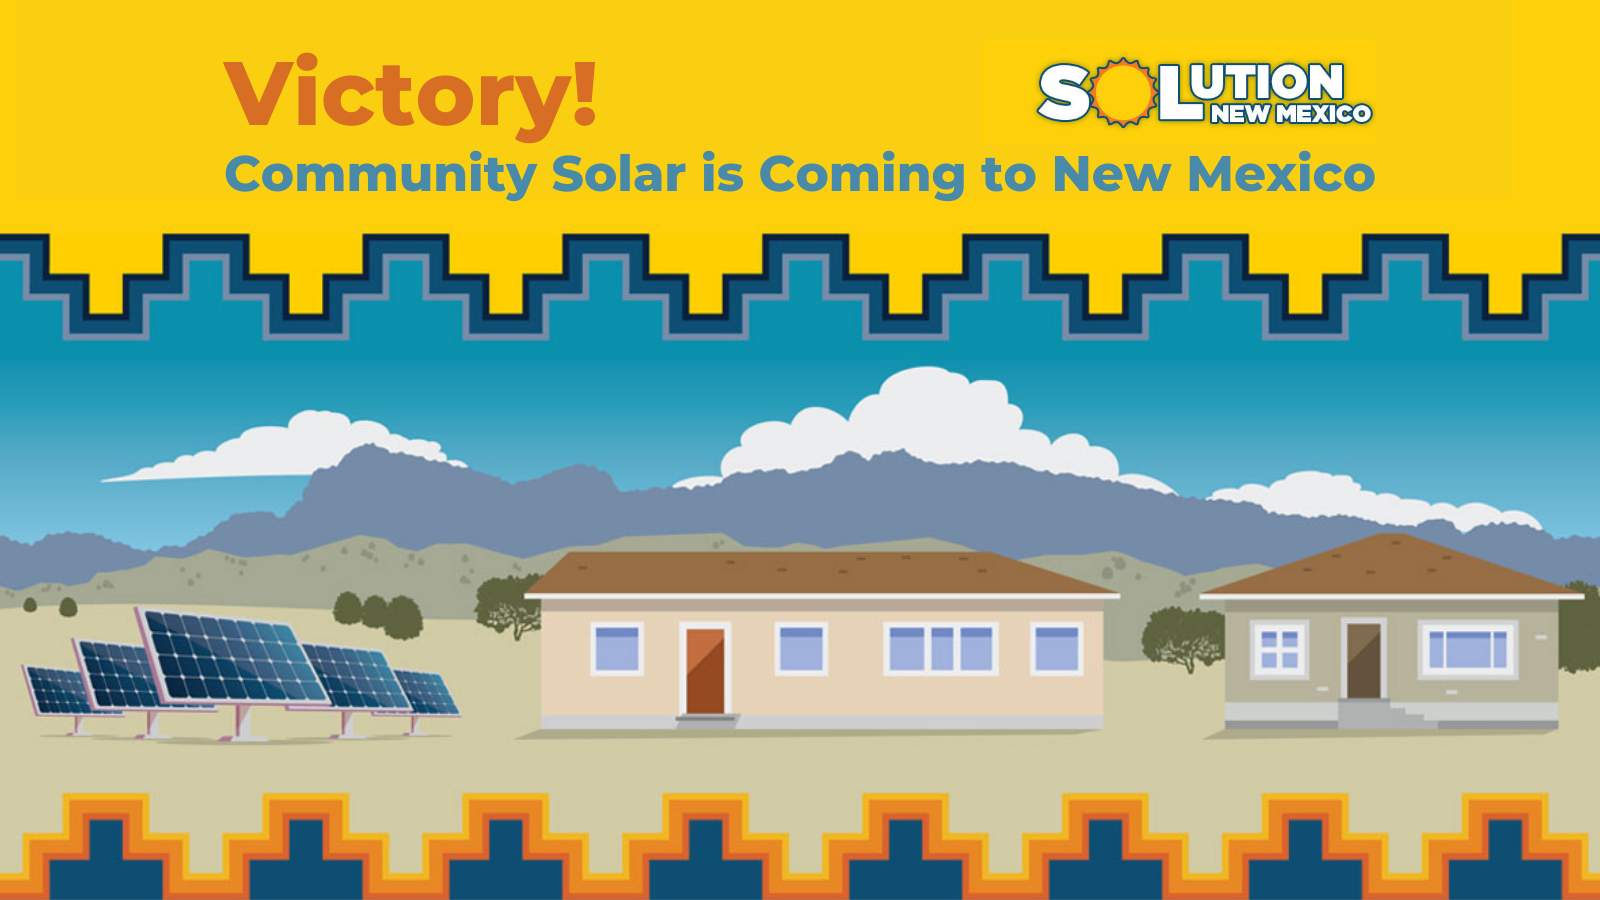 New Mexico becomes 21st state to enable community solar